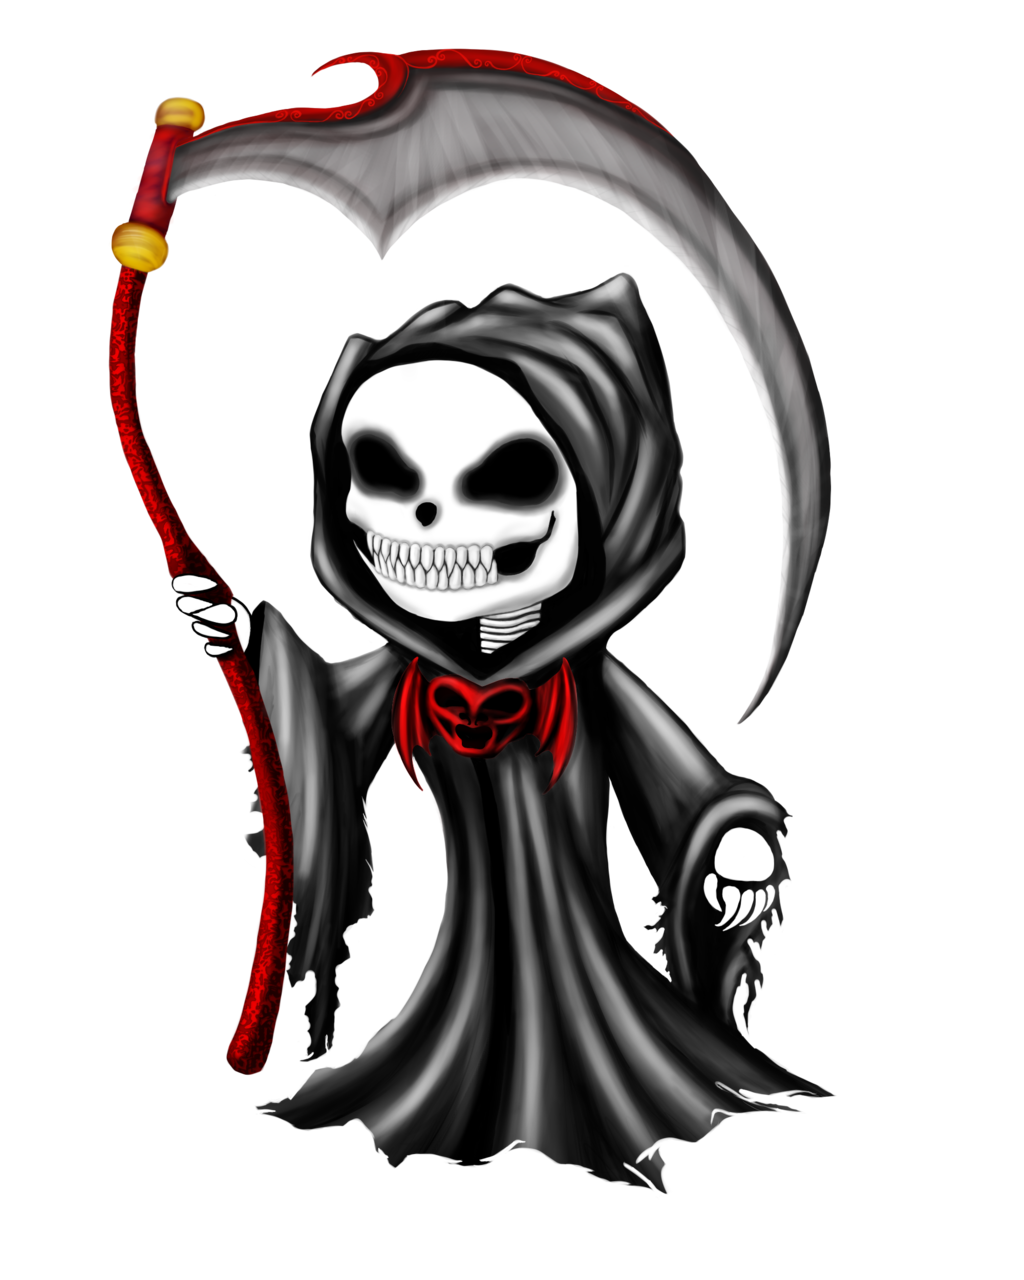 Old drawing grim reaper. Death calavera chibi transprent